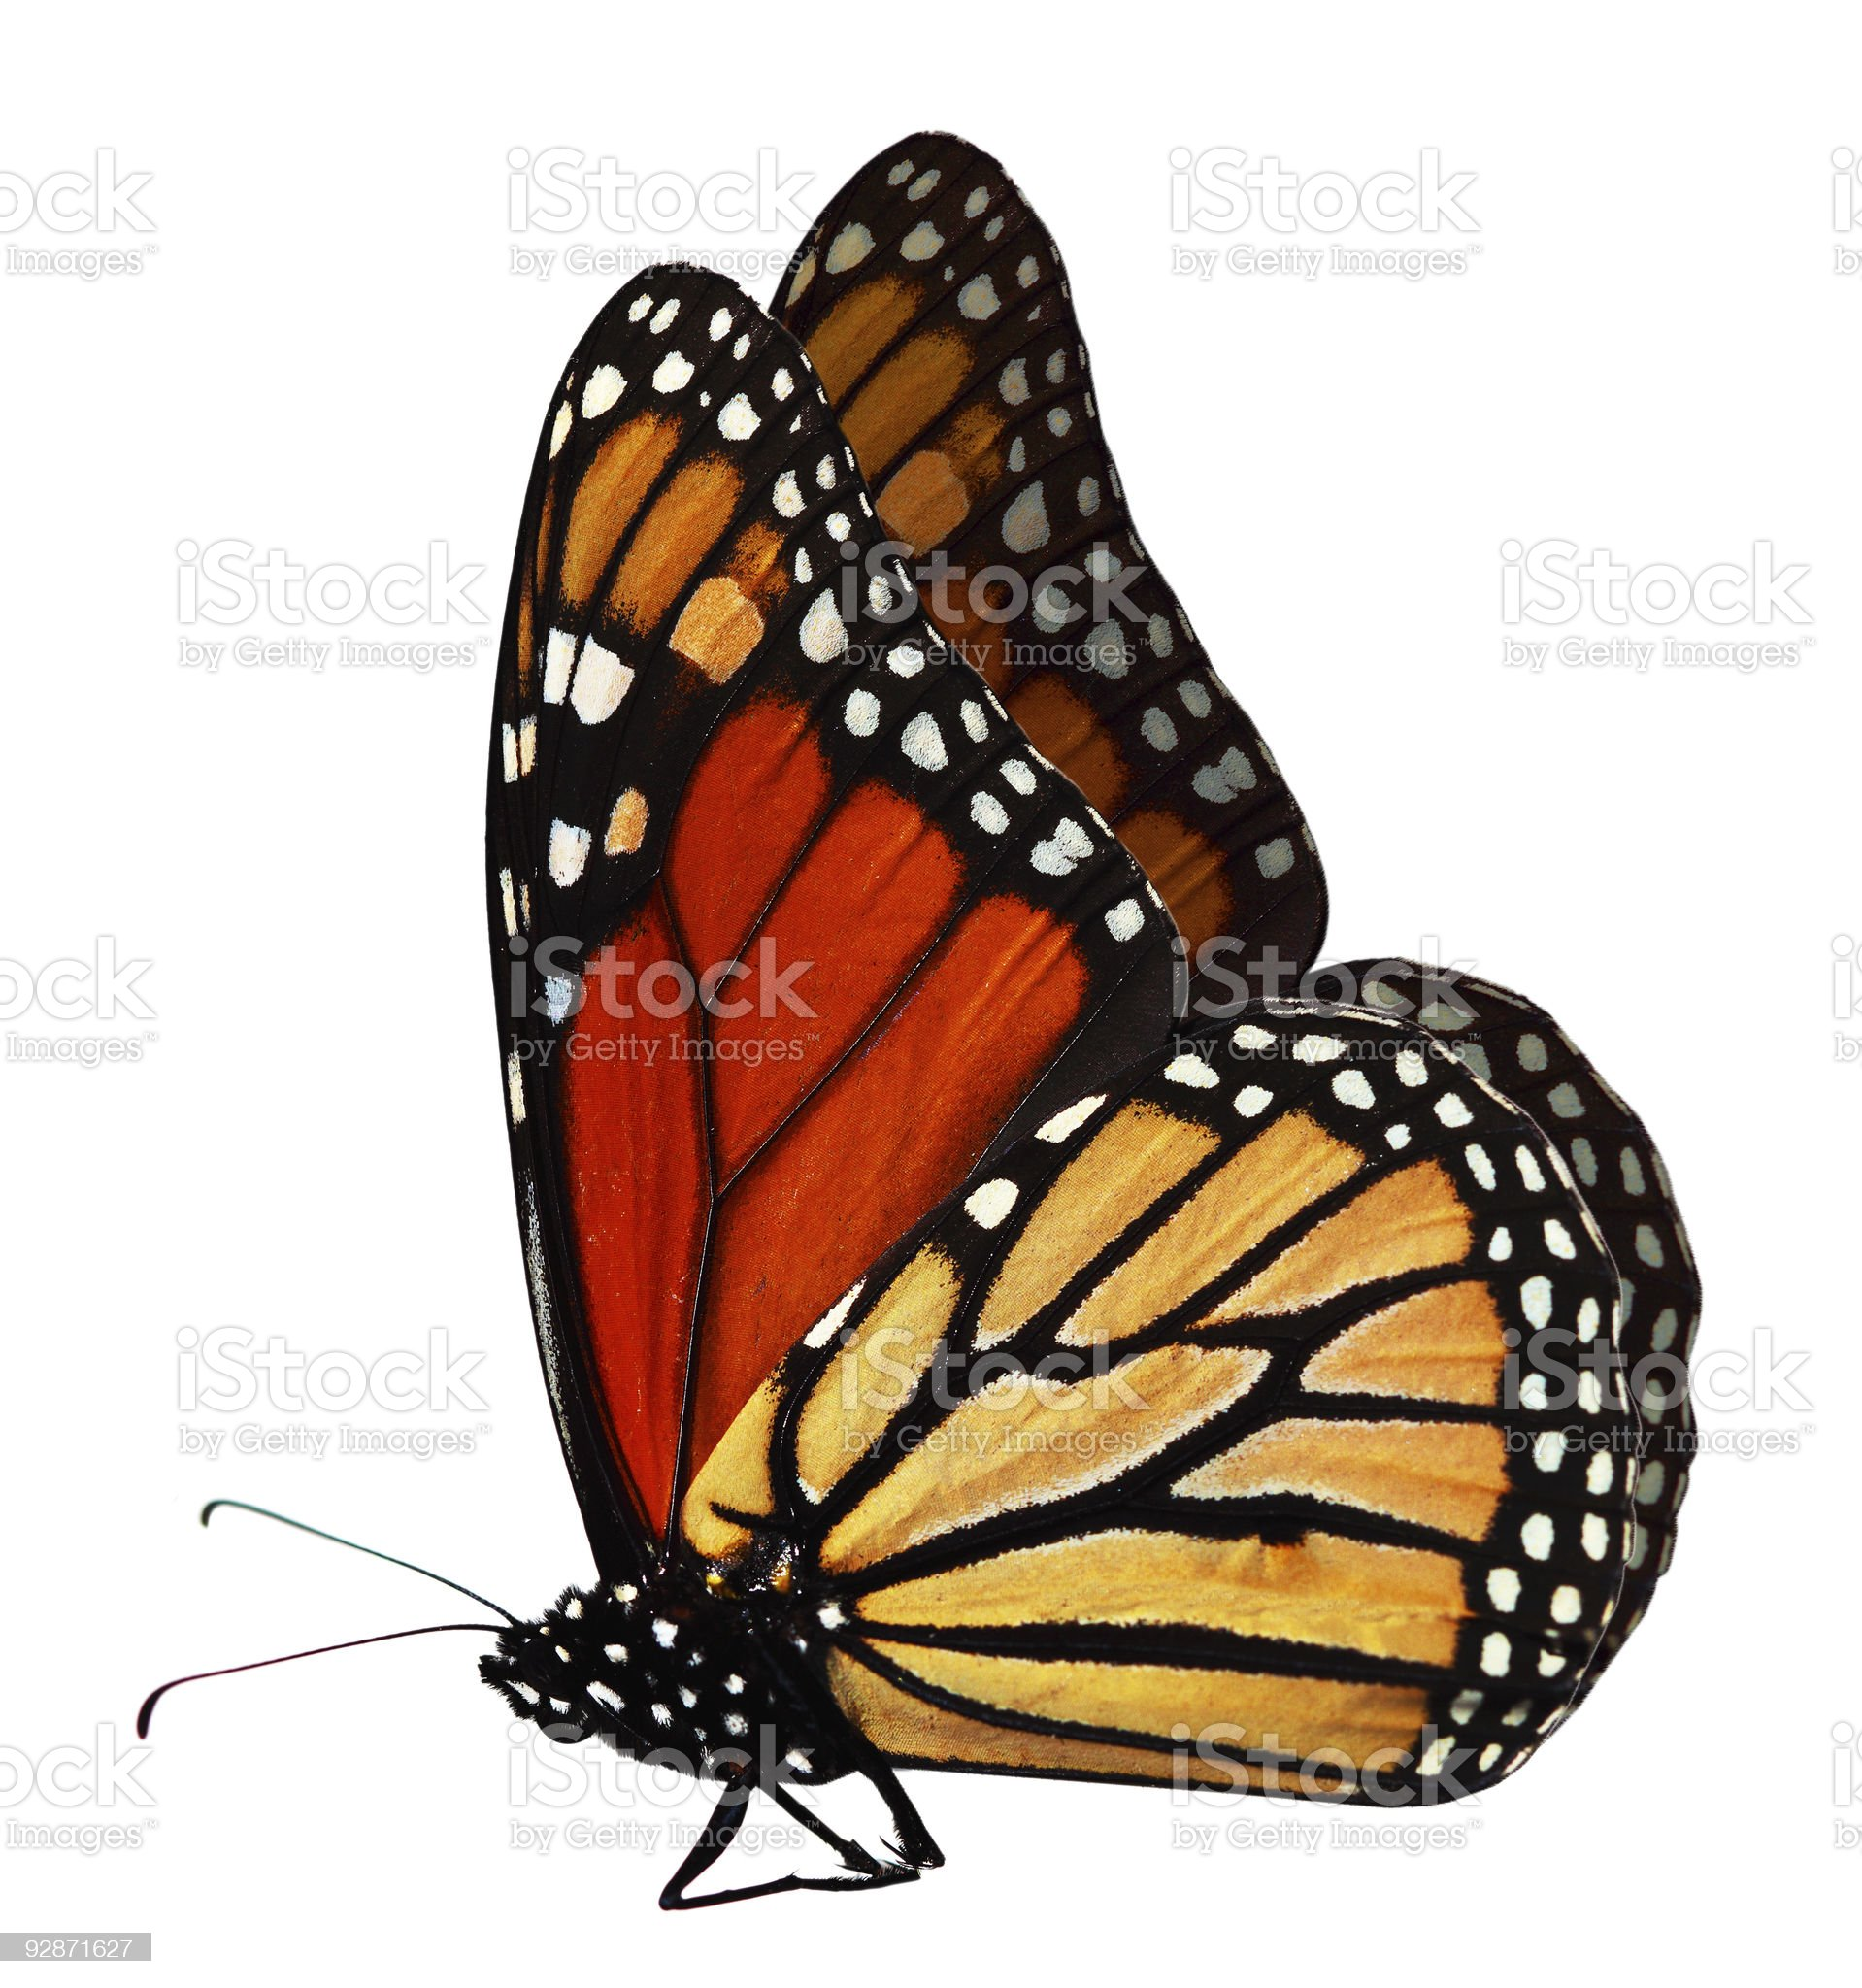 Monarch butterfly over a white background royalty-free stock photo